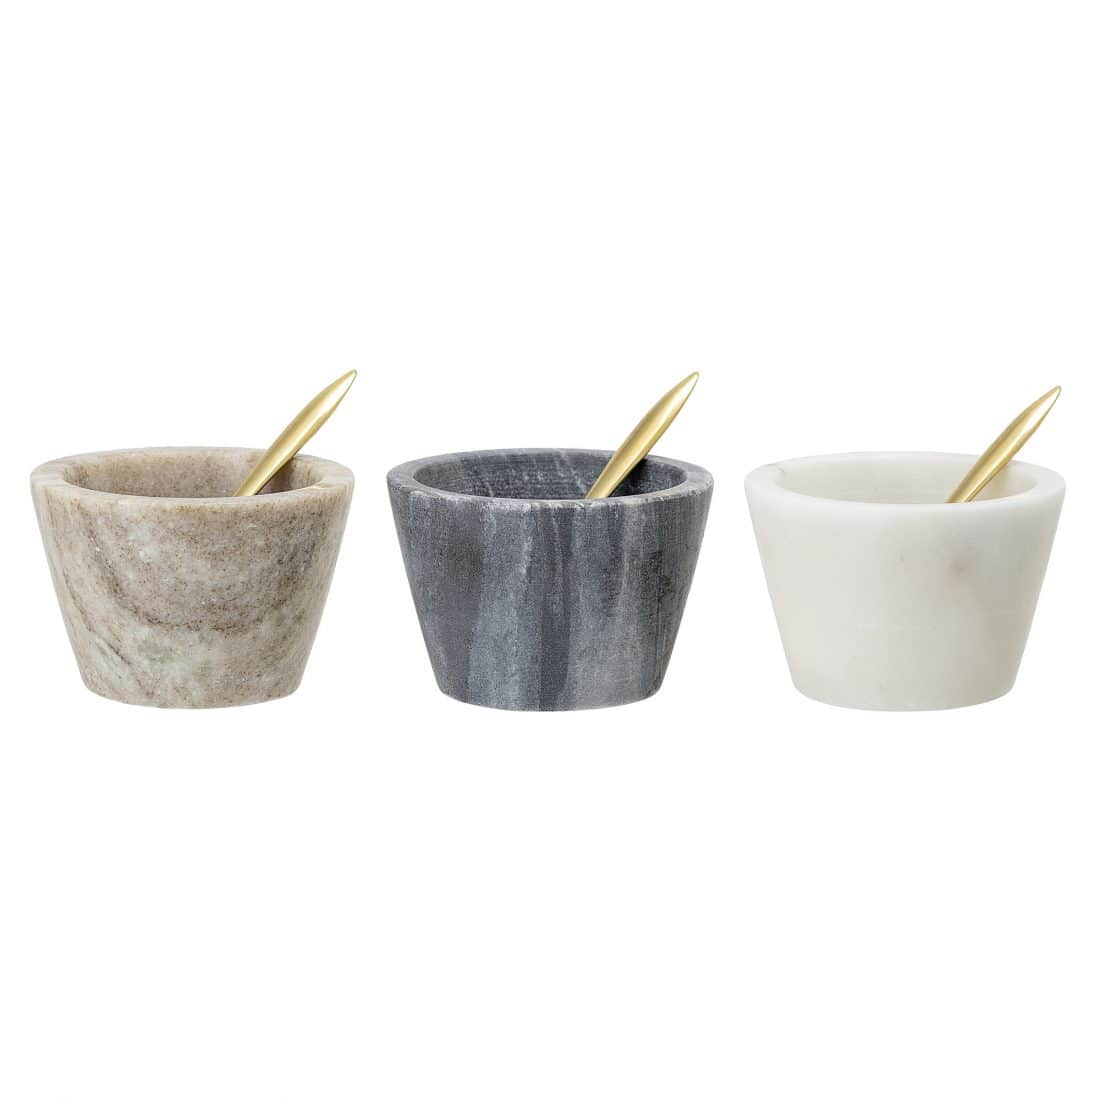 Trp Post Container Data Trp Post ID 14887 Rosemary Salt And Pepper Set With Gold Spoon 3 Ass Trp Post Container